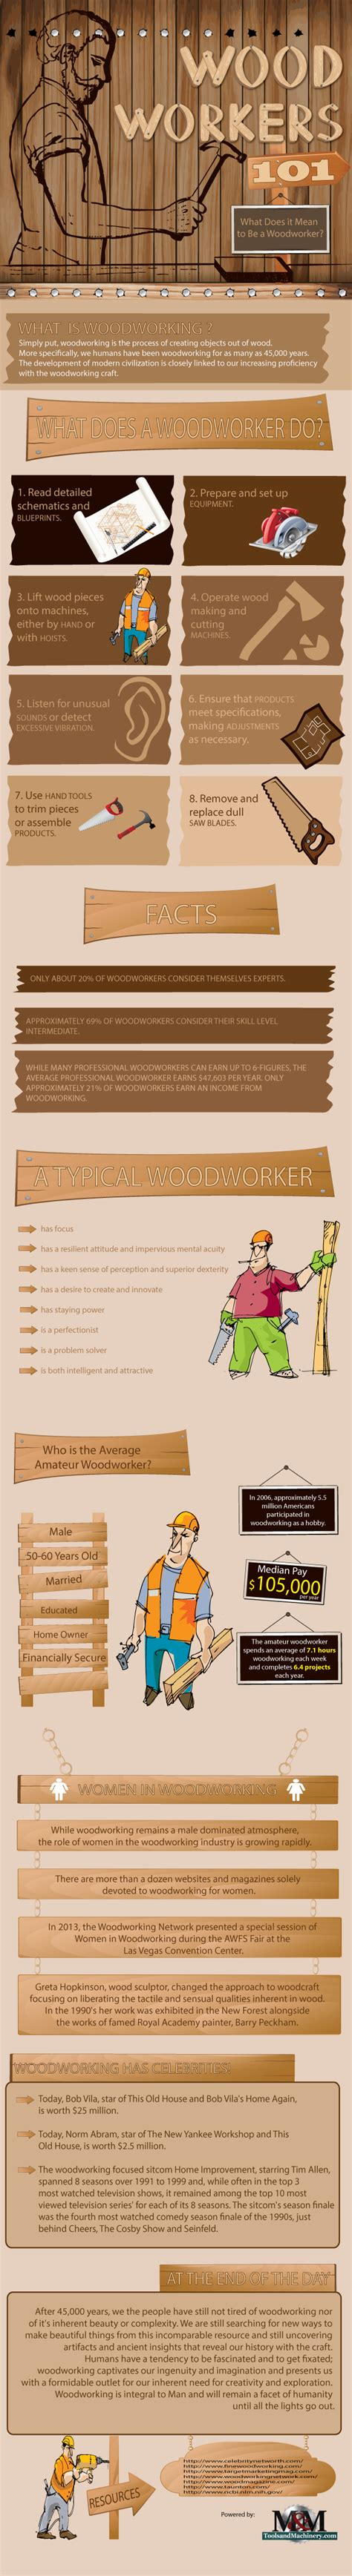 Woodworker And Woodworking Facts An Infographic